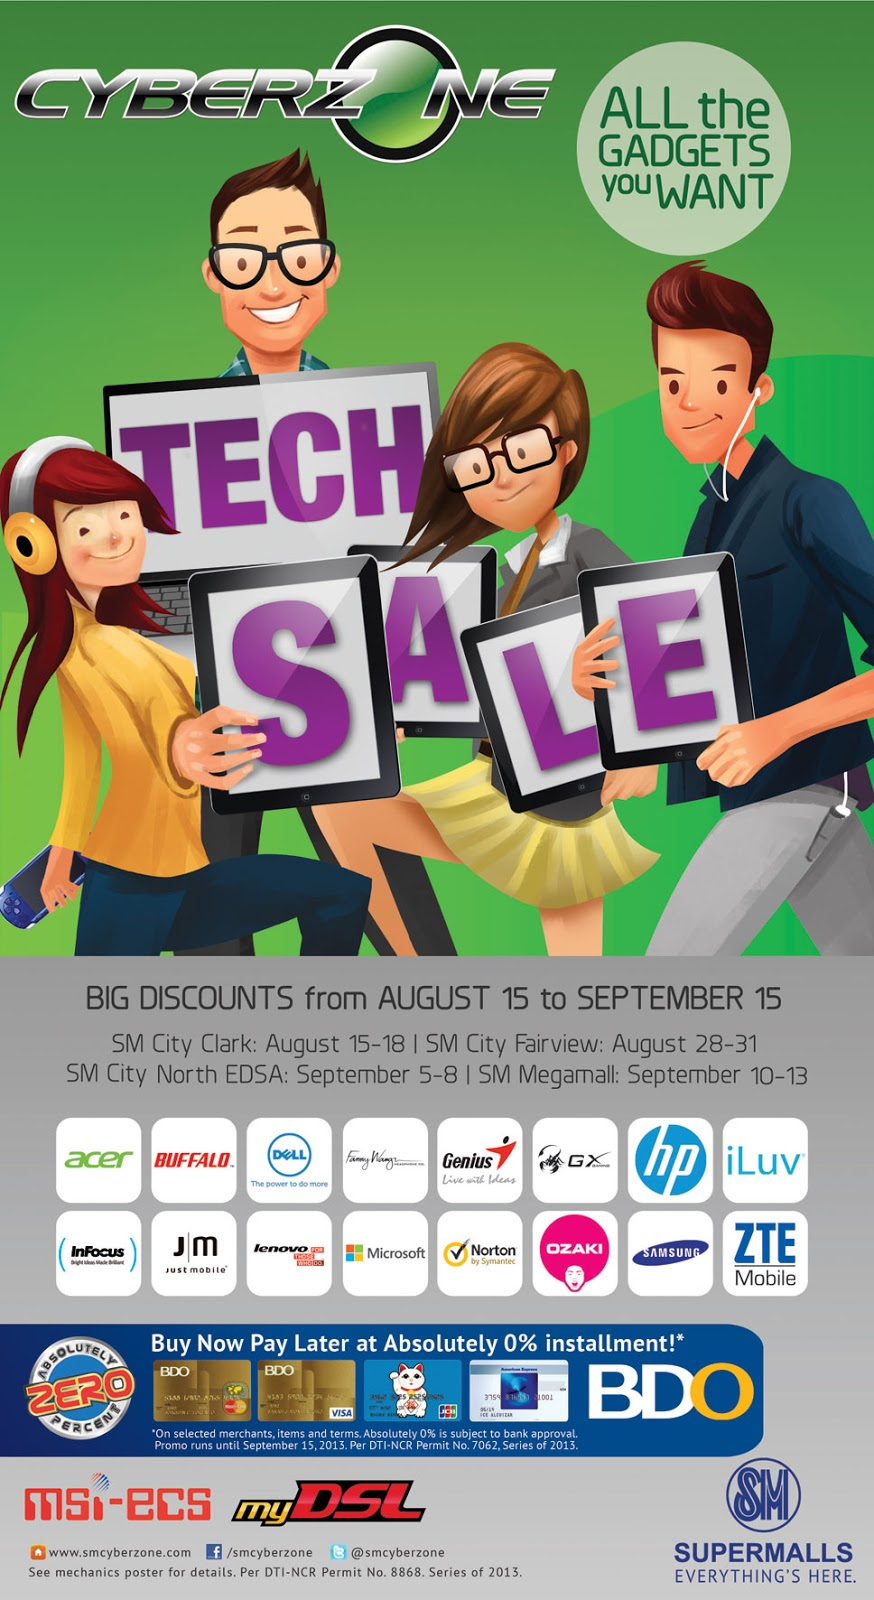 sm cyberzone sale august 15 september 15